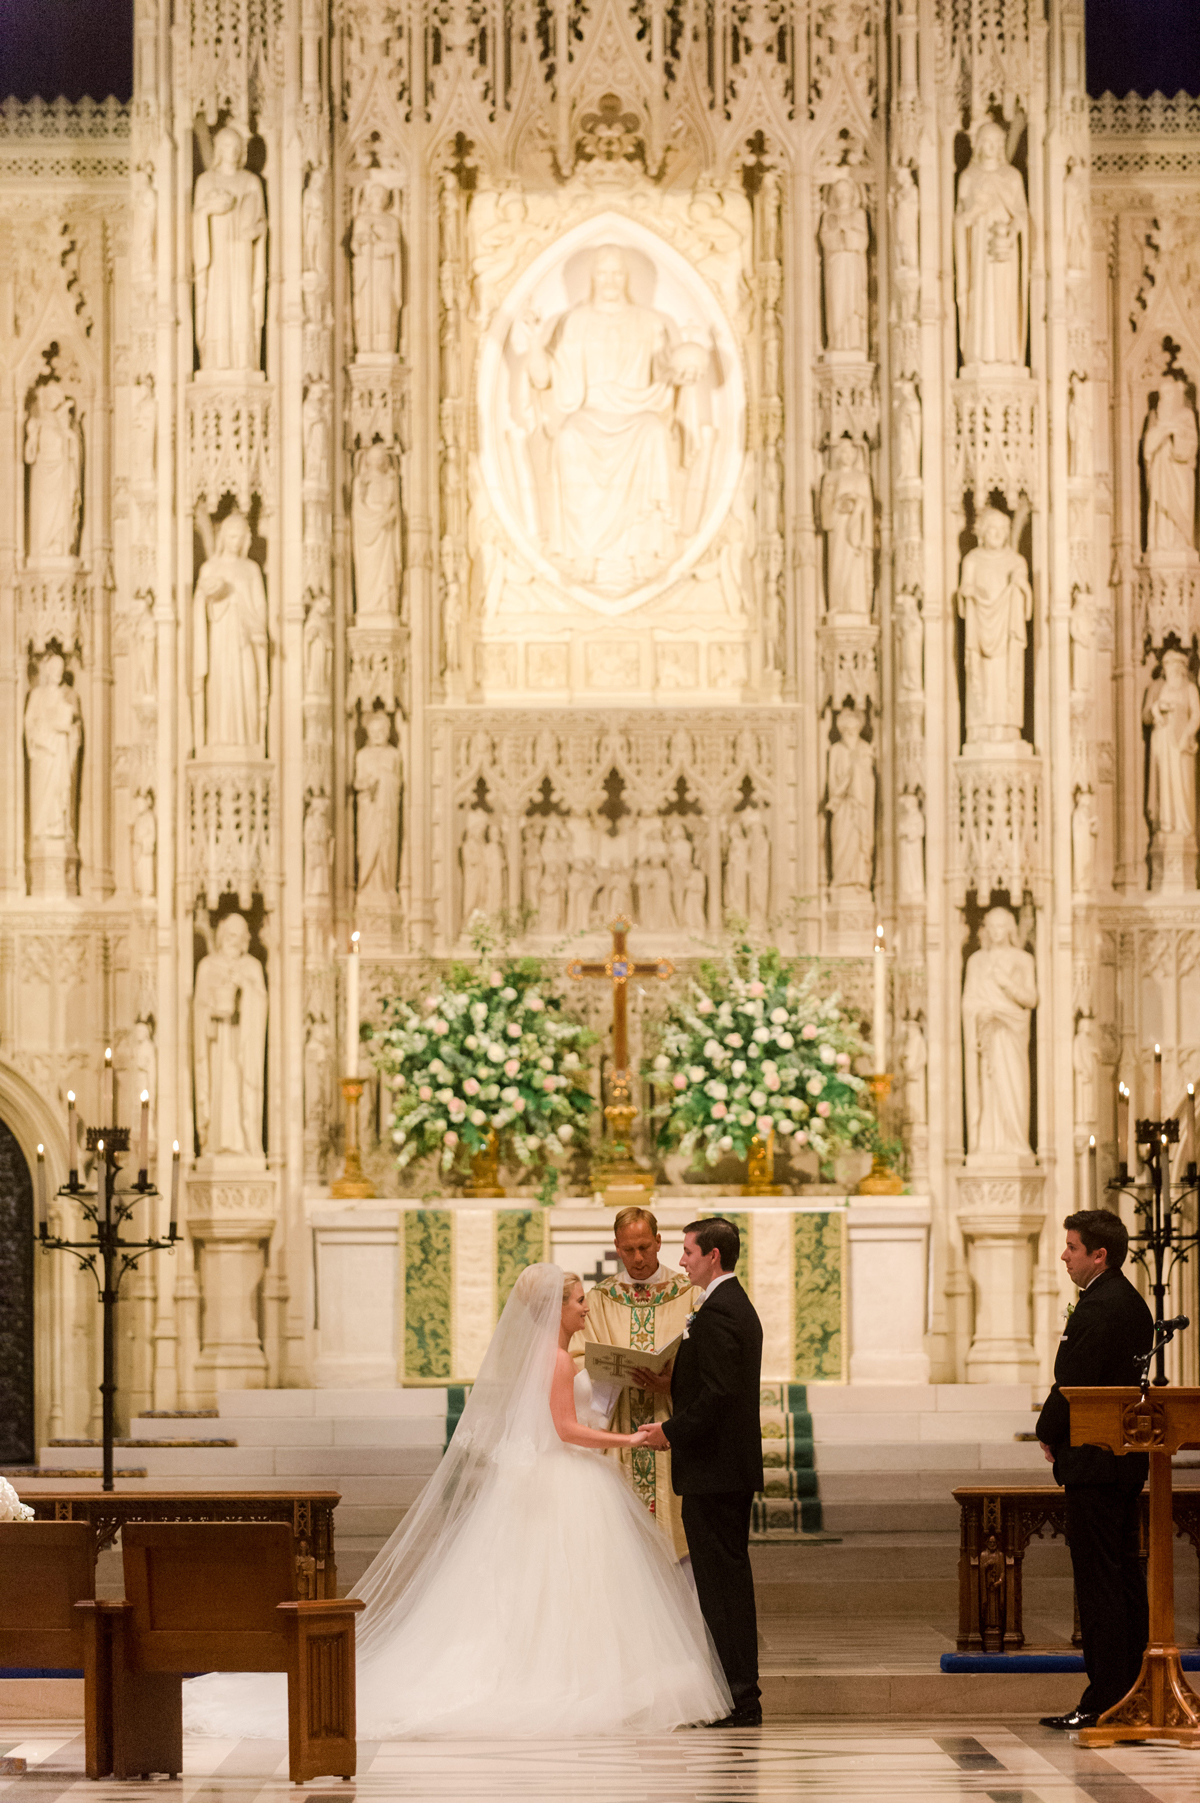 bride and groom wedding ceremony cathedral traditional